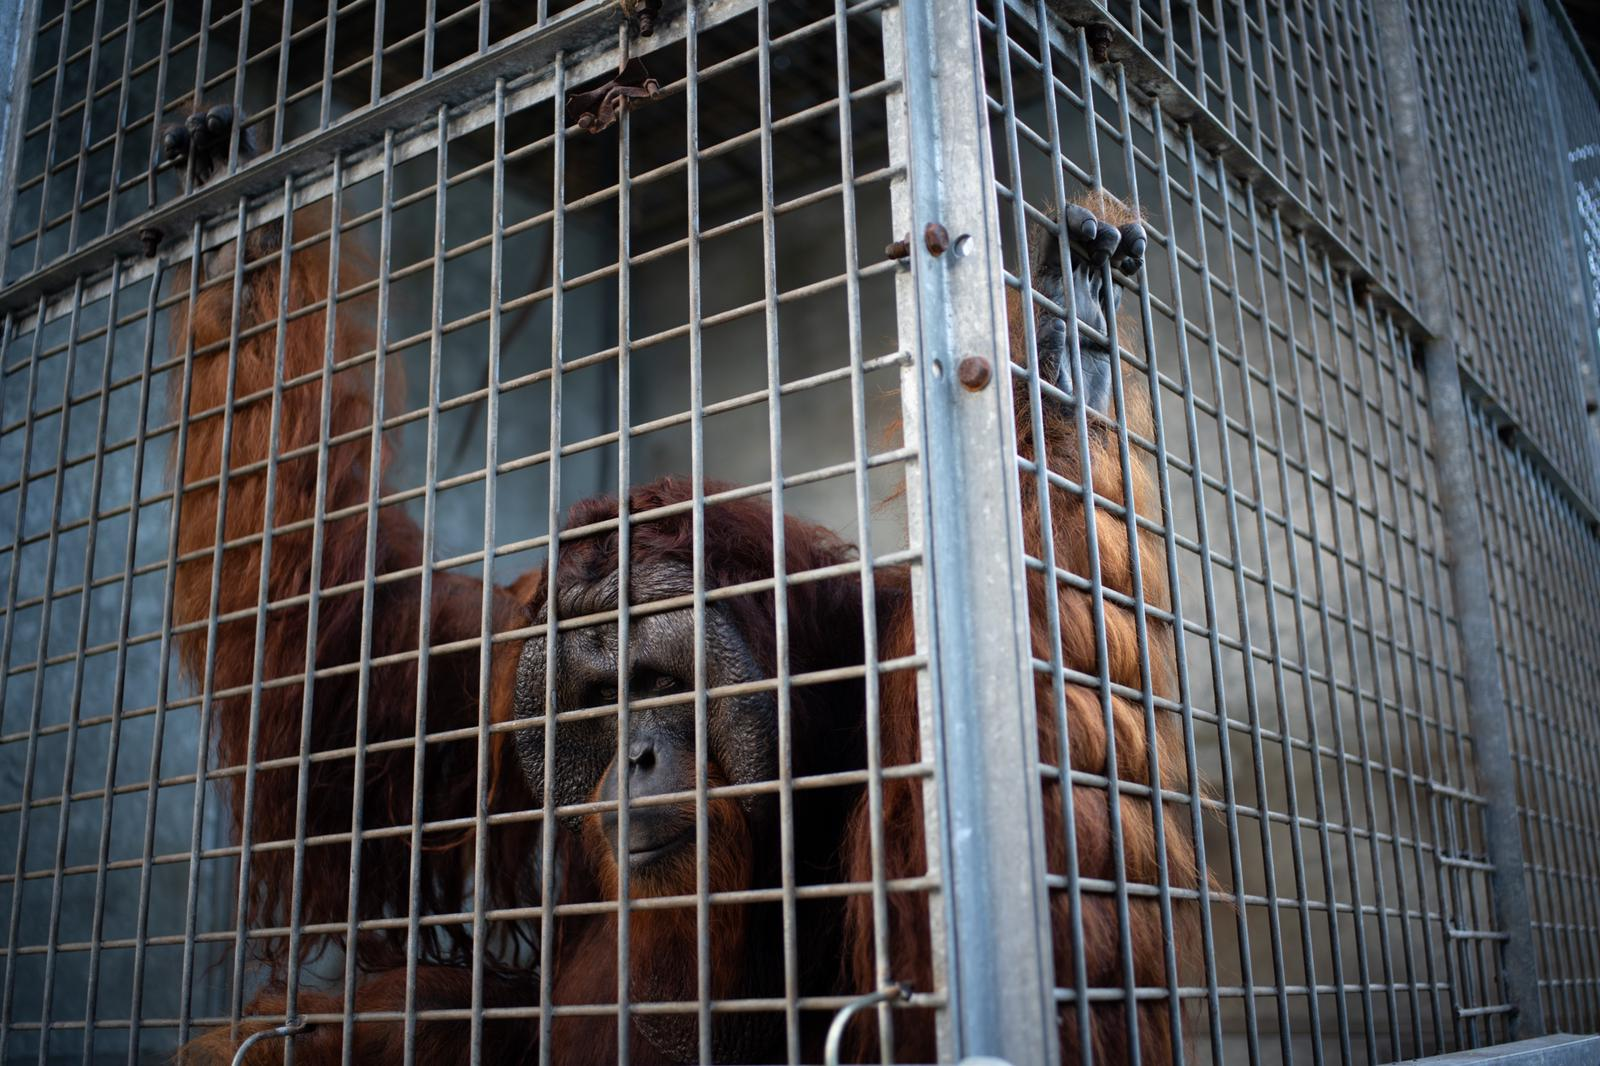 An orangutan in a cage before release into the wild in Borneo